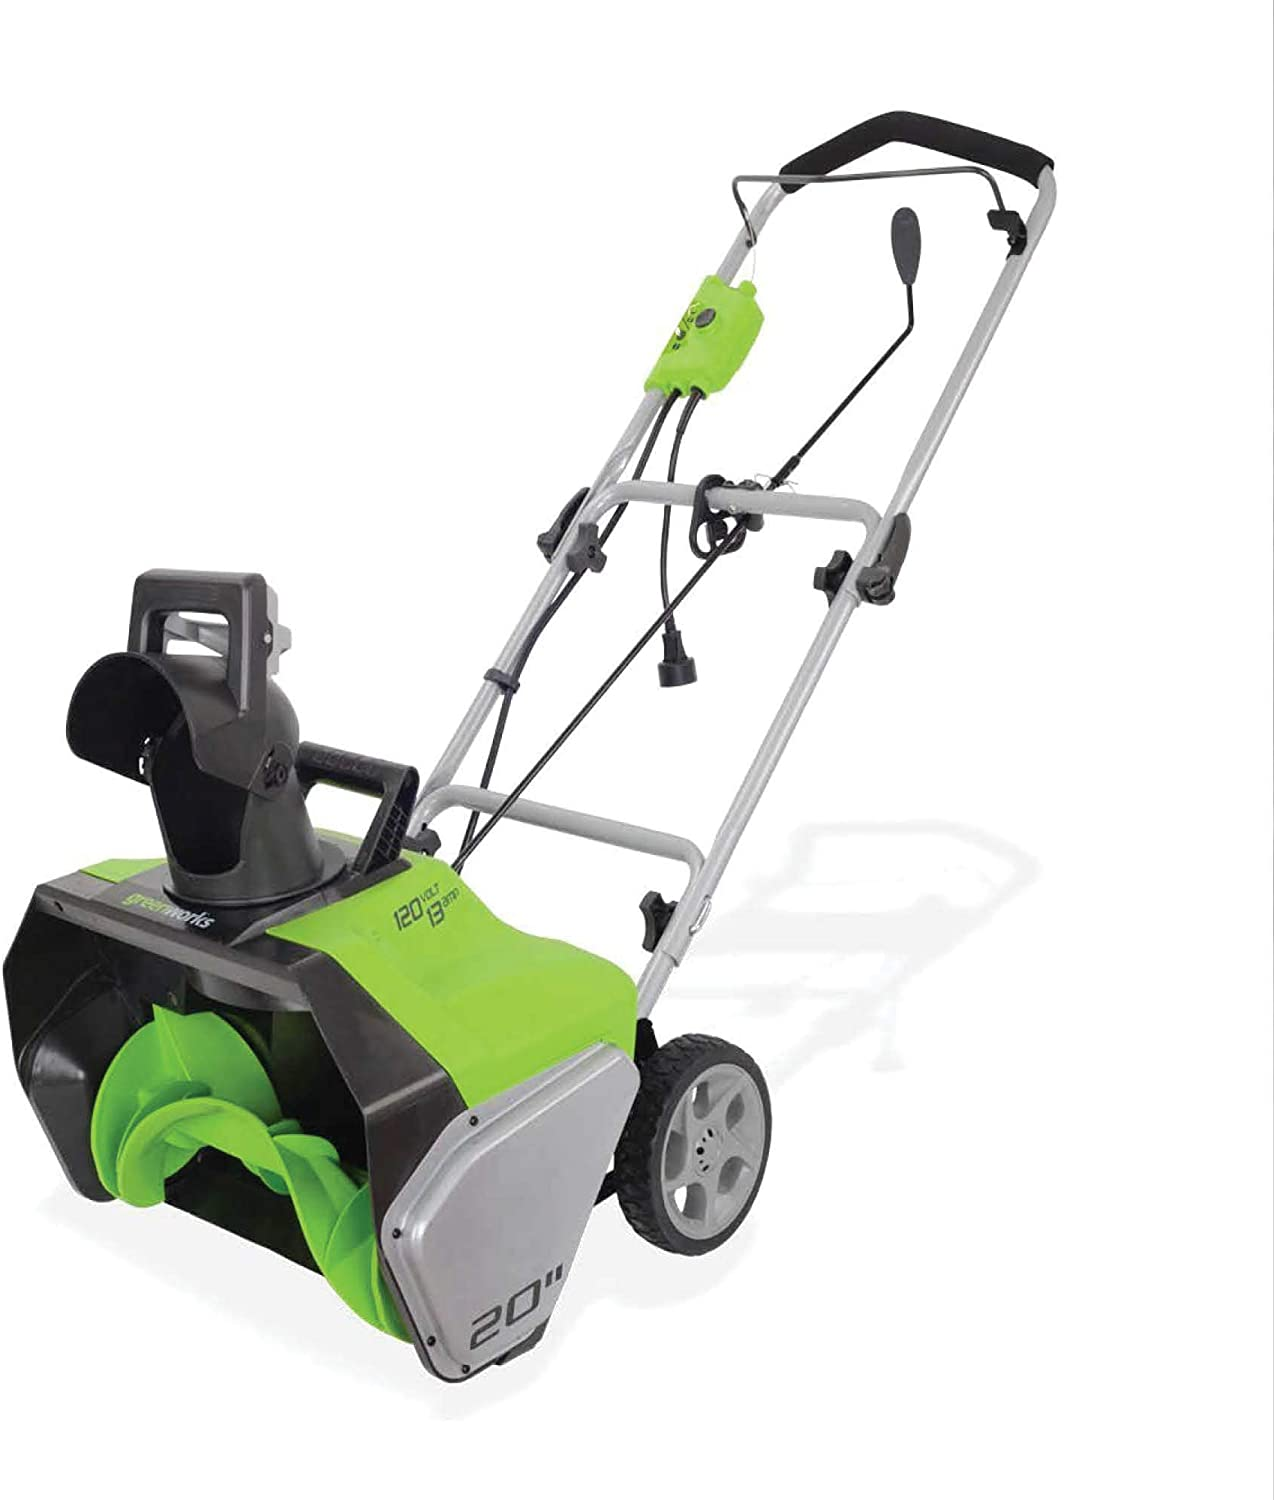 Best Snow Blower for Gravel Driveway Reviews 2021